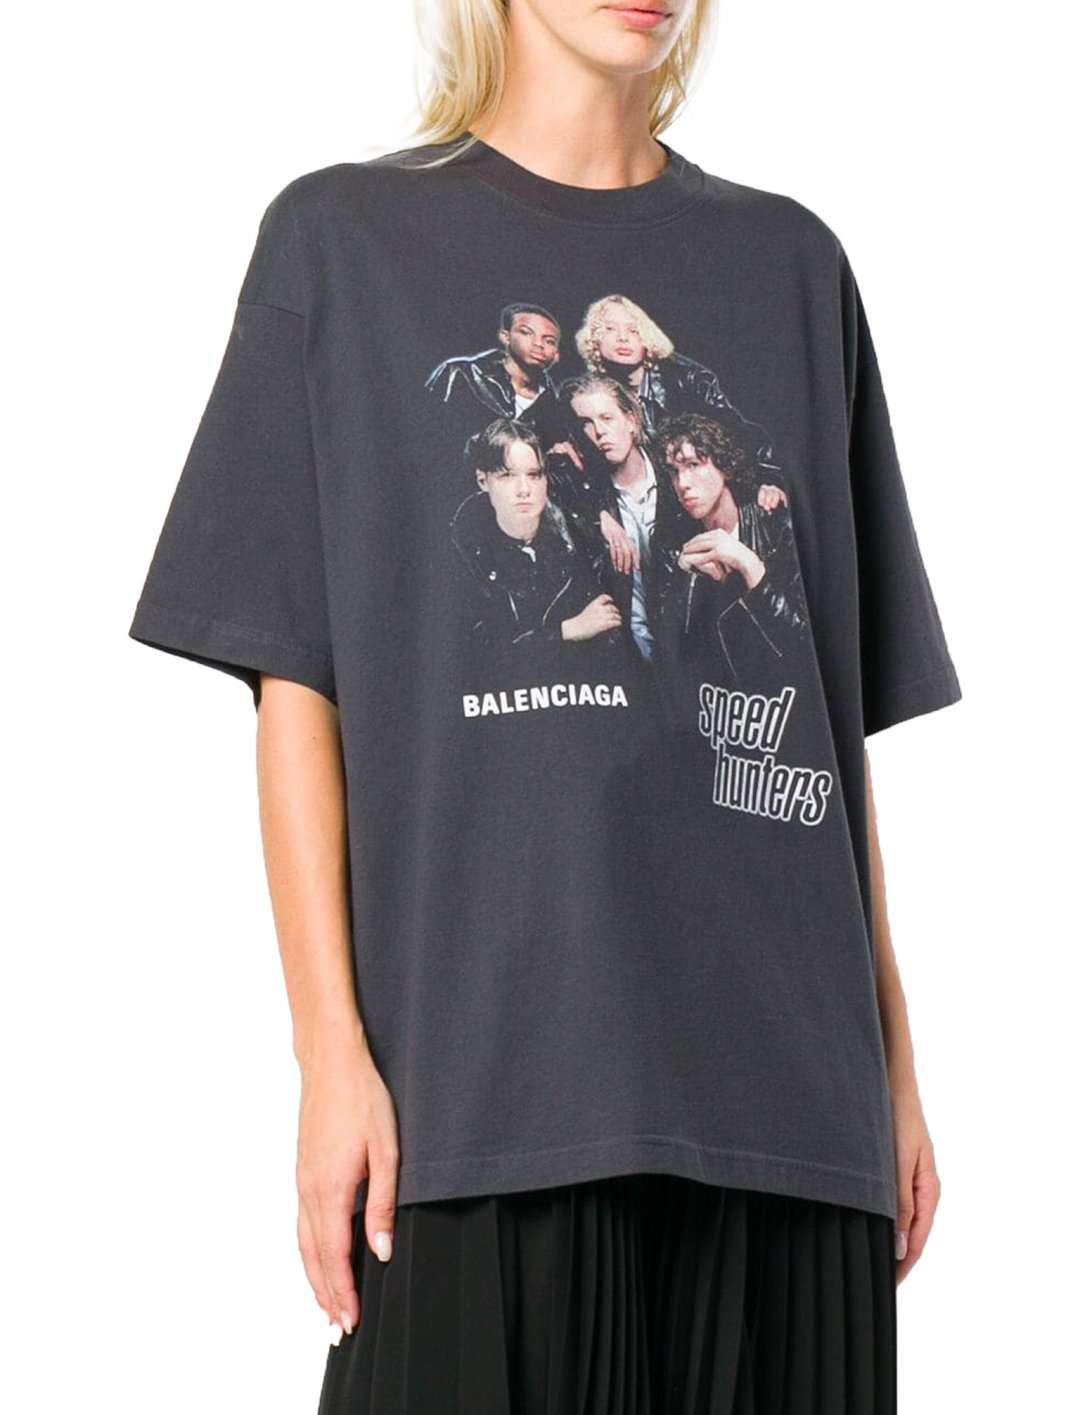 "Speedhunters T-Shirt {""id"":5,""product_section_id"":1,""name"":""Clothing"",""order"":5} Balenciaga"